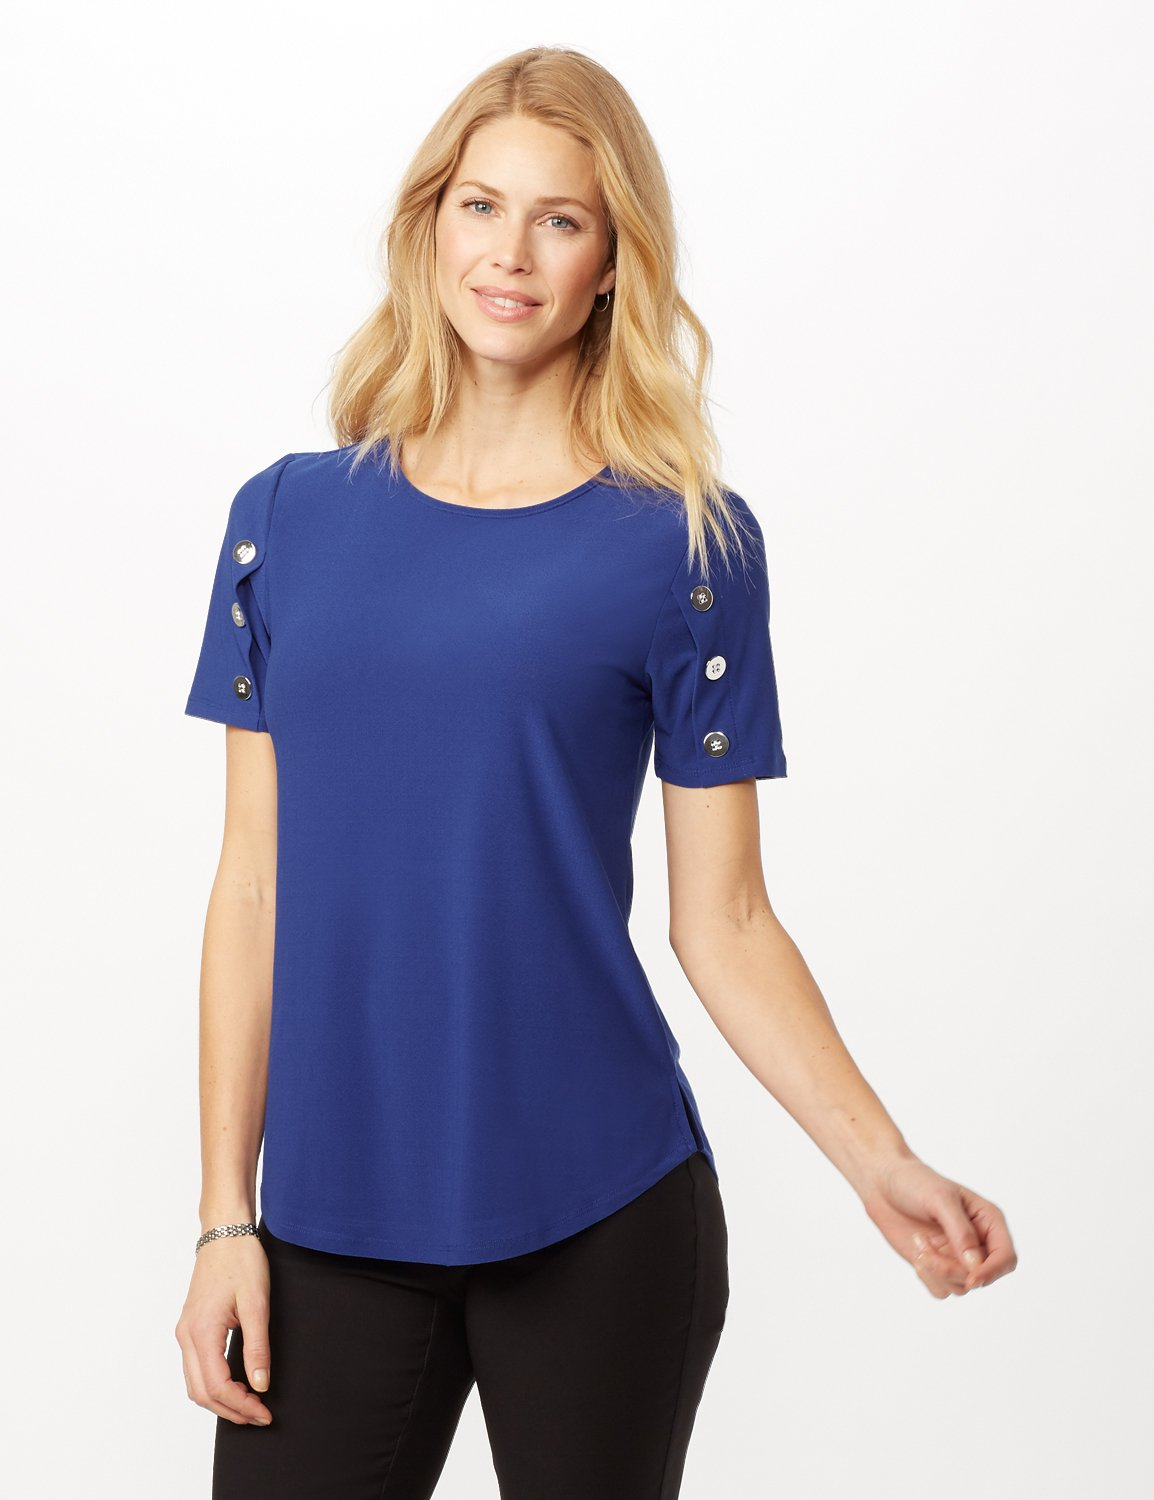 Three Button Crepe Tee Knit Top -Royal - Front